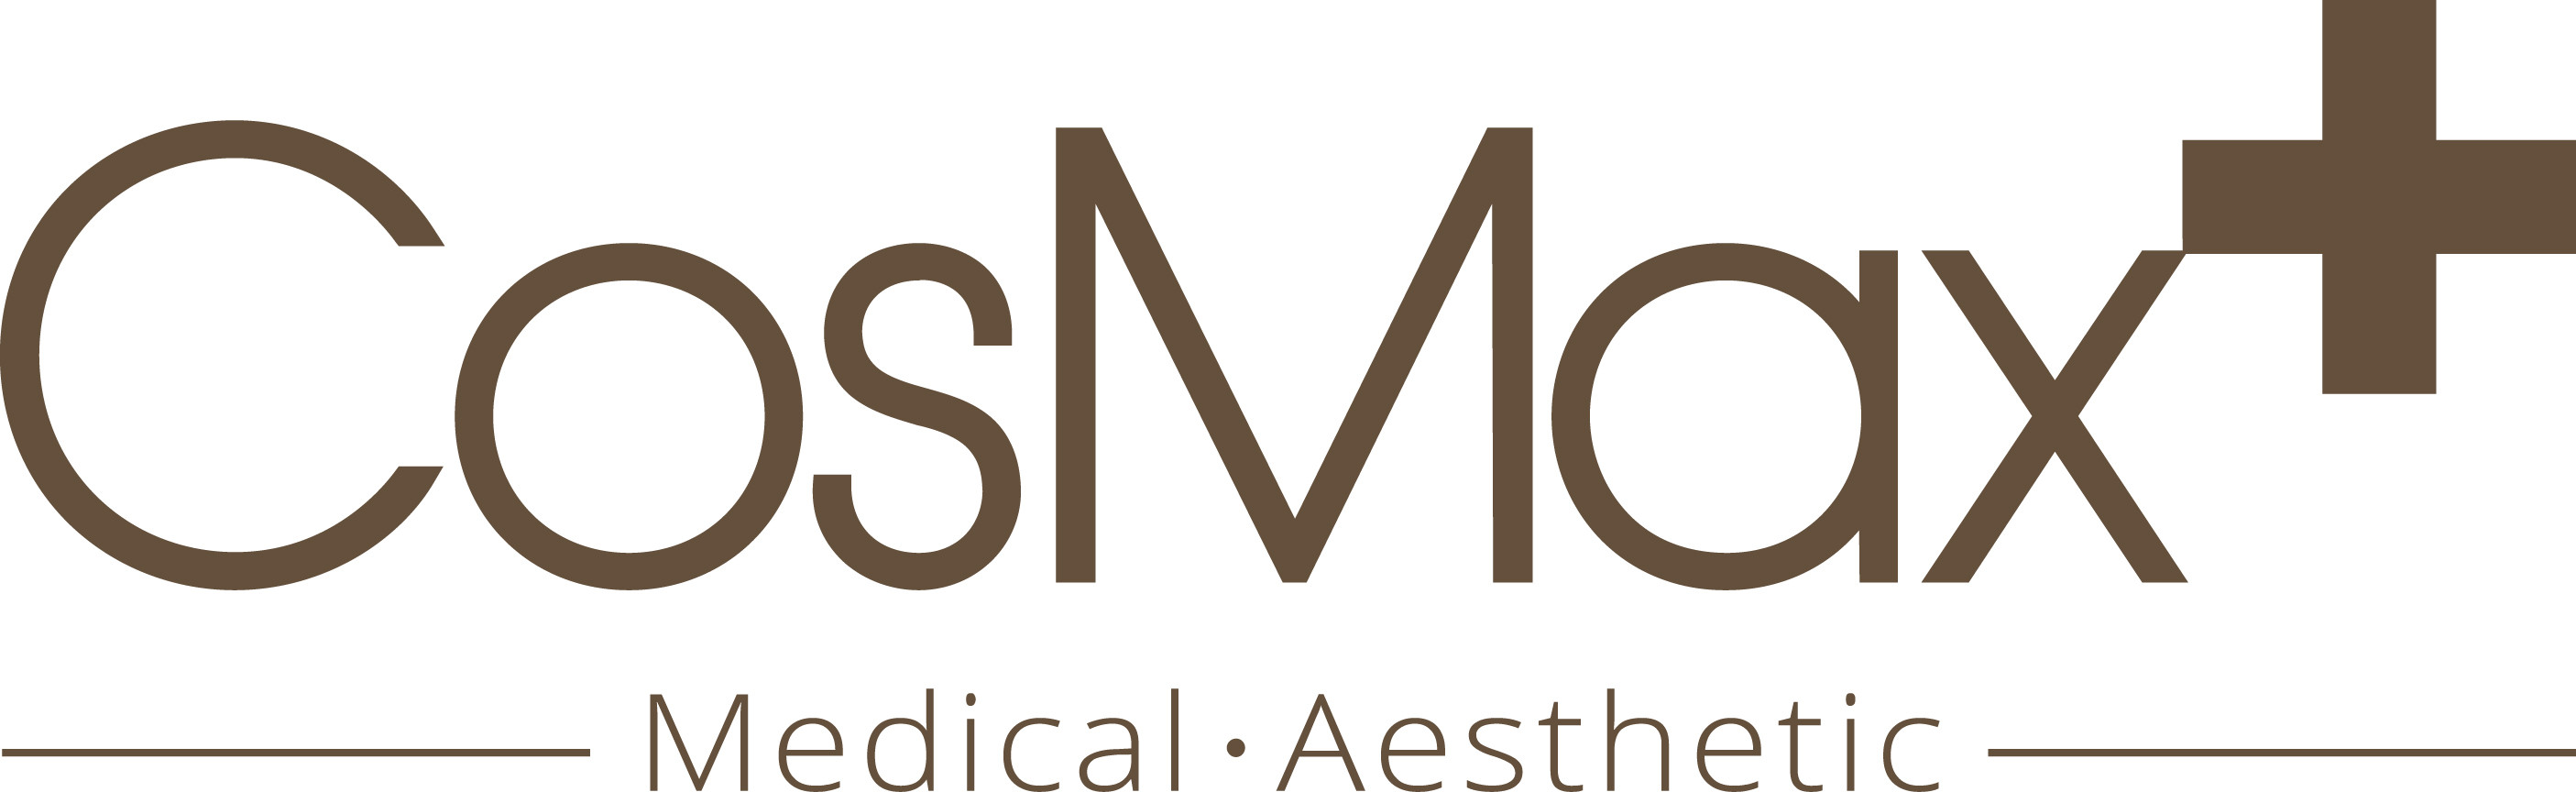 CosMax Logo-Medical Aesthetic-7532C.jpg